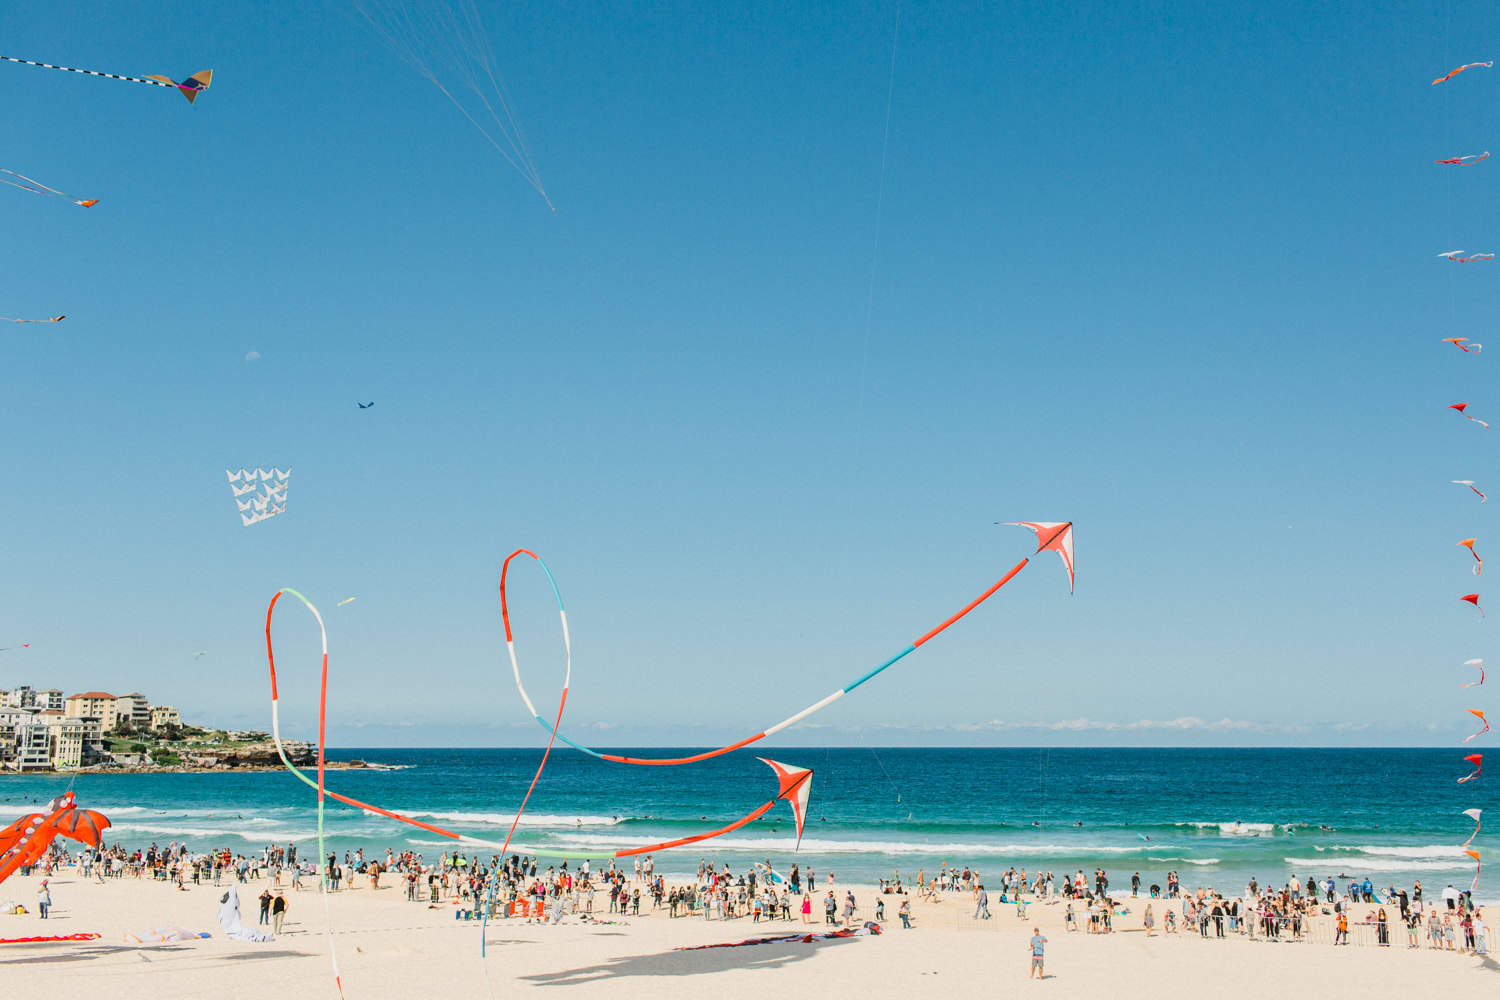 festival-of-the-winds-bondi-beach-sydney-2.jpg